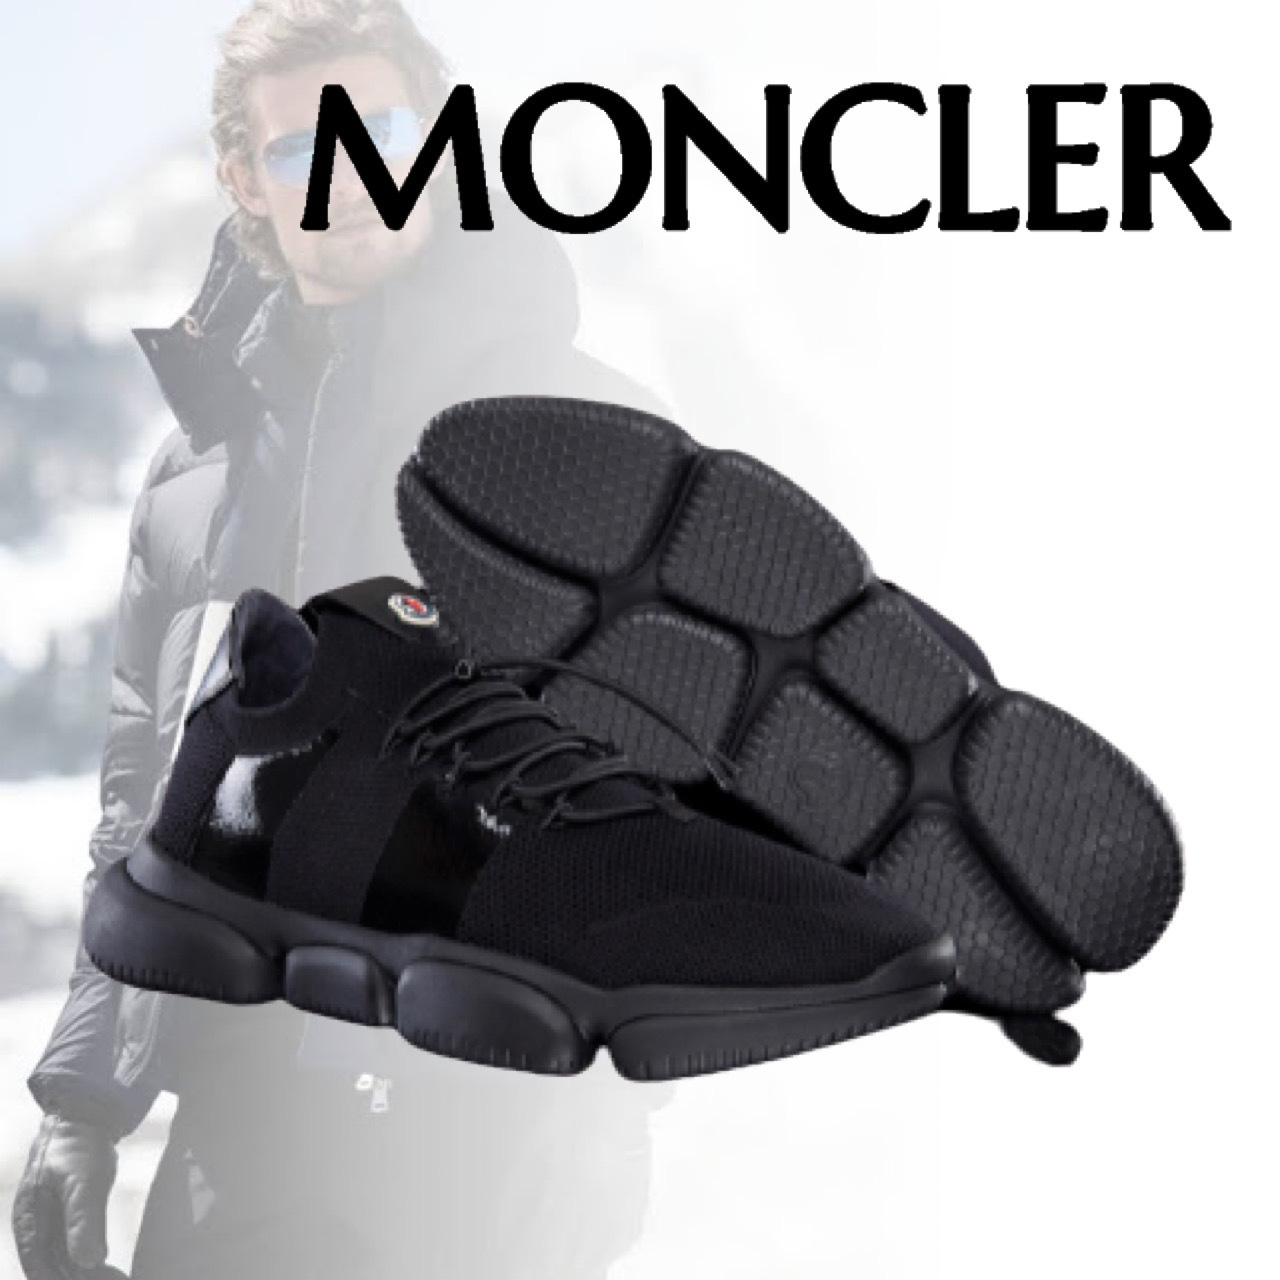 MONCLER モンクレール THE BUBBLE SNEAKER スニーカー ロゴ (MONCLER/スニーカー) 61637341